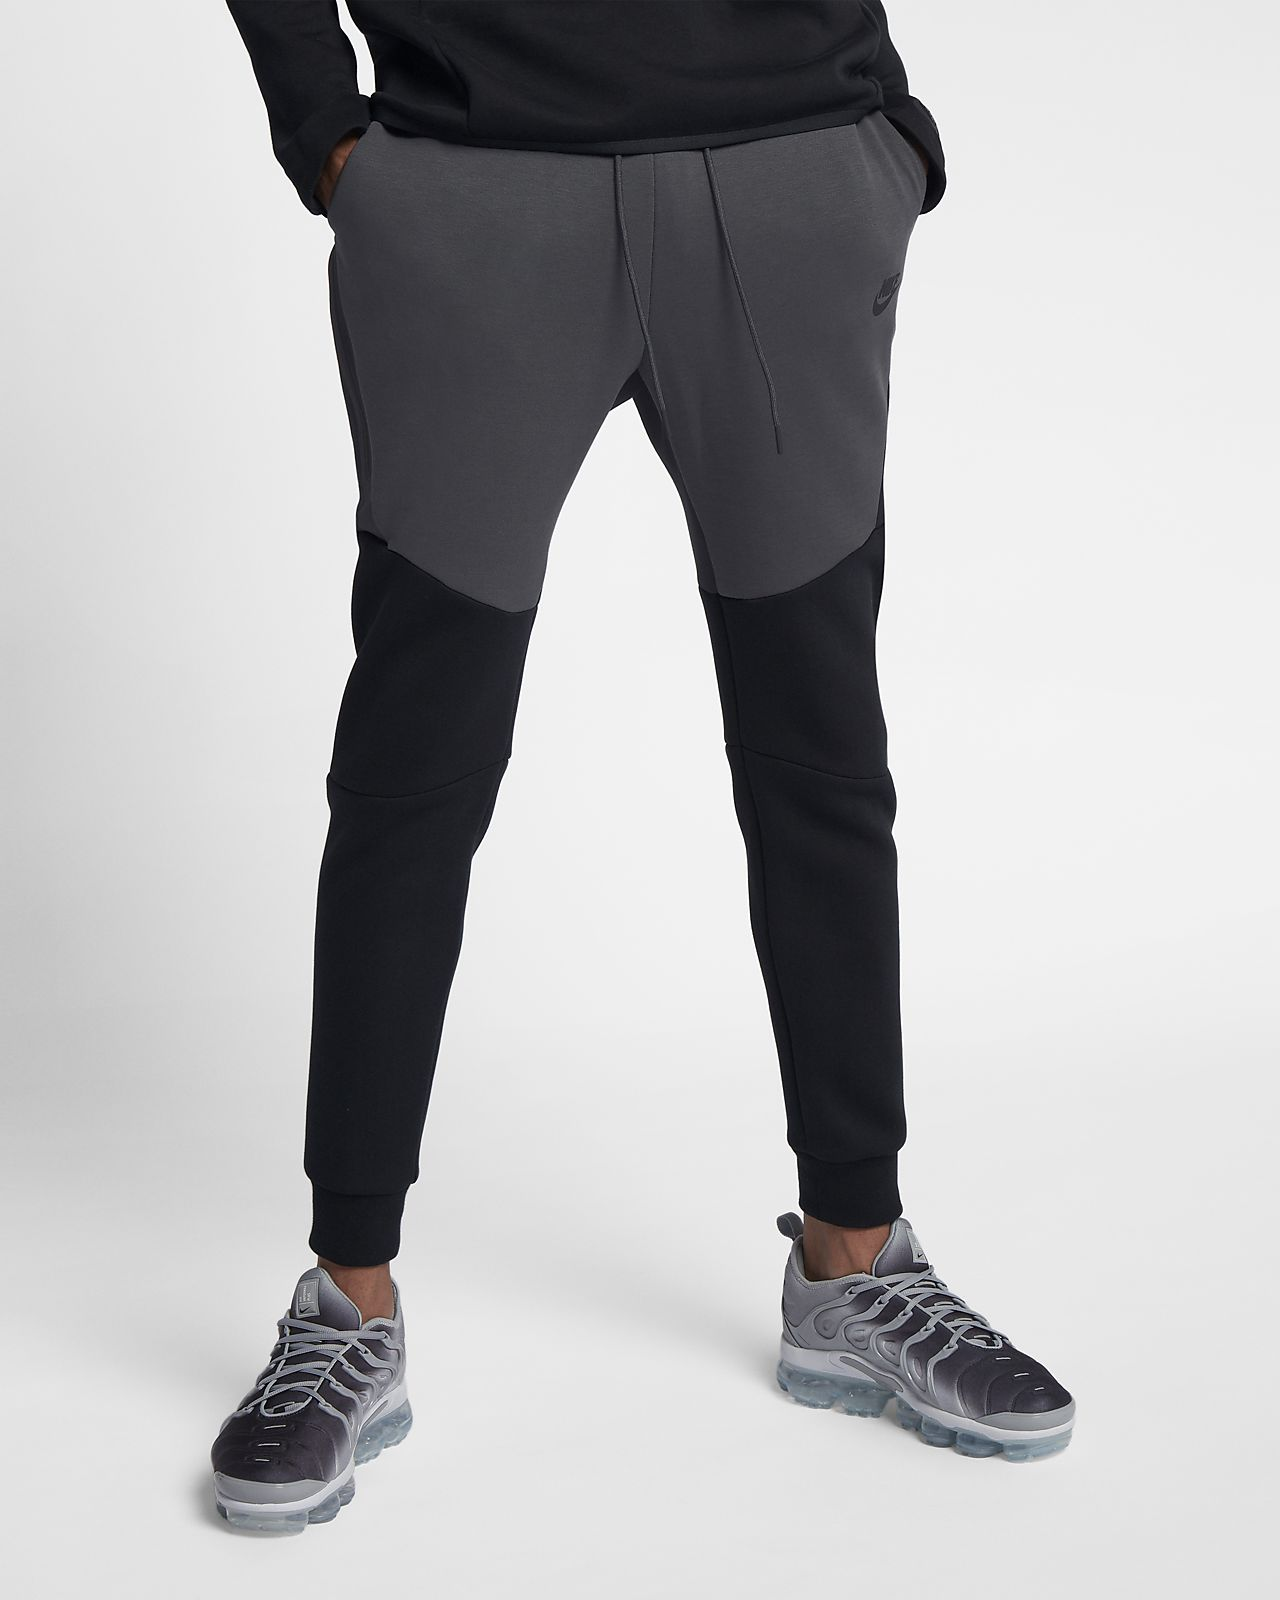 d7559cfdf6d4 Nike Sportswear Tech Fleece Men s Joggers. Nike.com GB